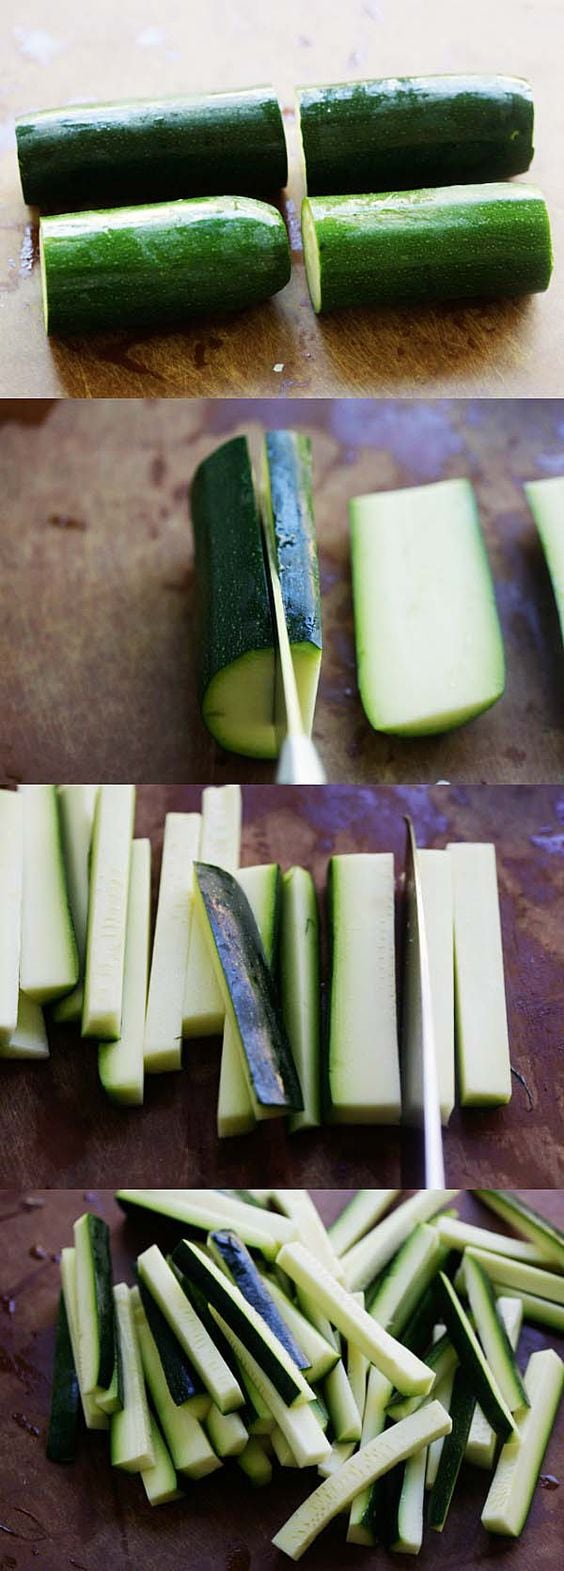 How to Cut Zucchini Fries - learn the step-by-step picture guide on the proper ways to slice and cut zucchini into zucchini fries | rasamalaysia.com